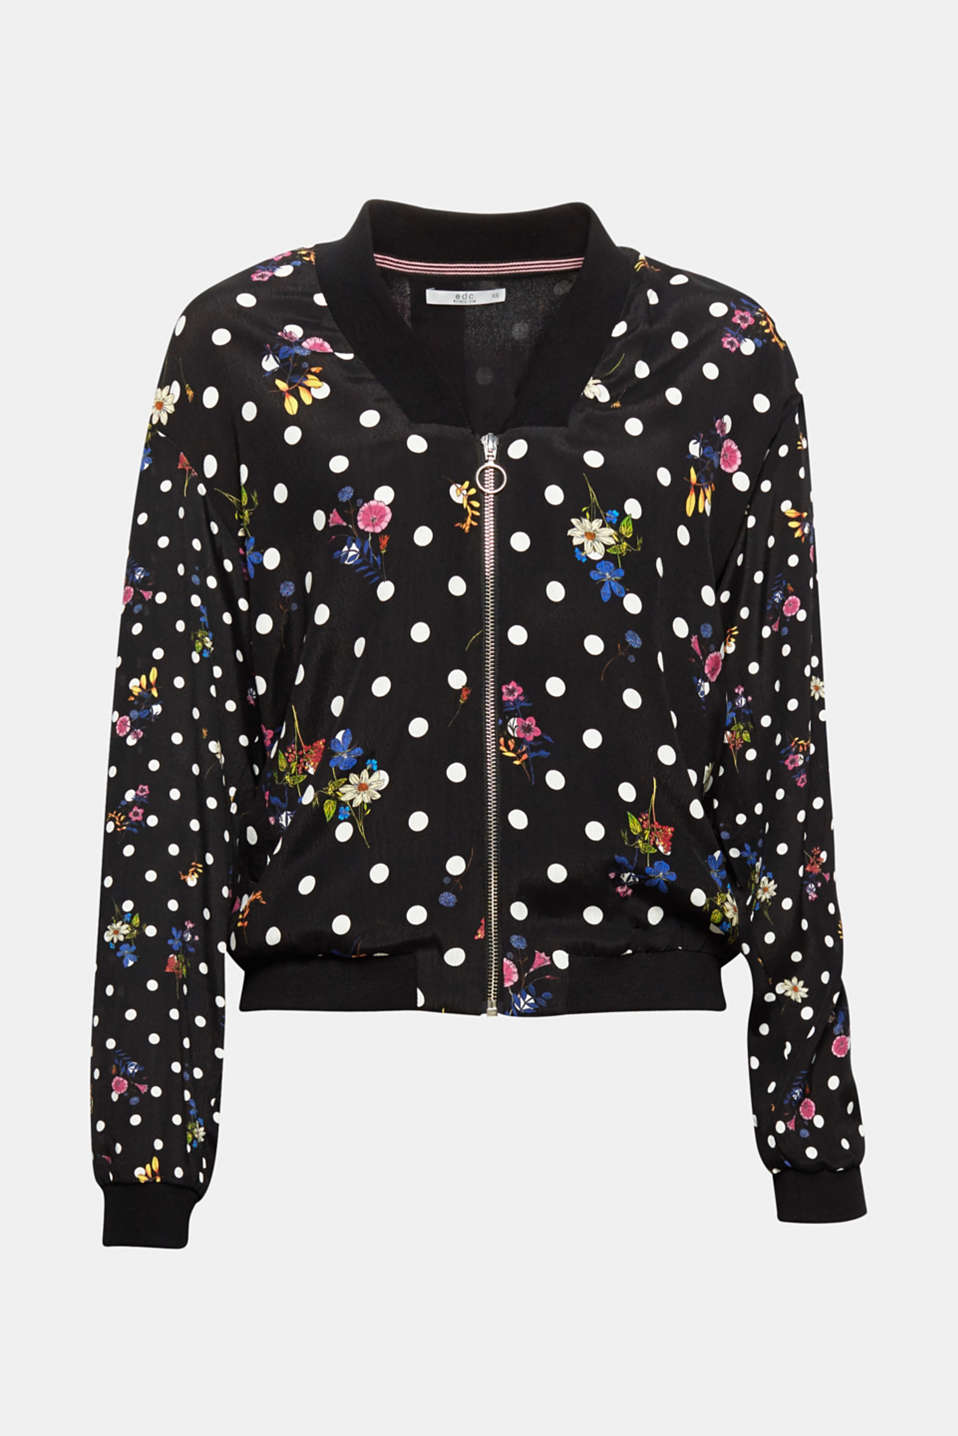 This lightweight bomber jacket is a great eye-catcher thanks to the mixed pattern of charming polka dots and romantic flowers.